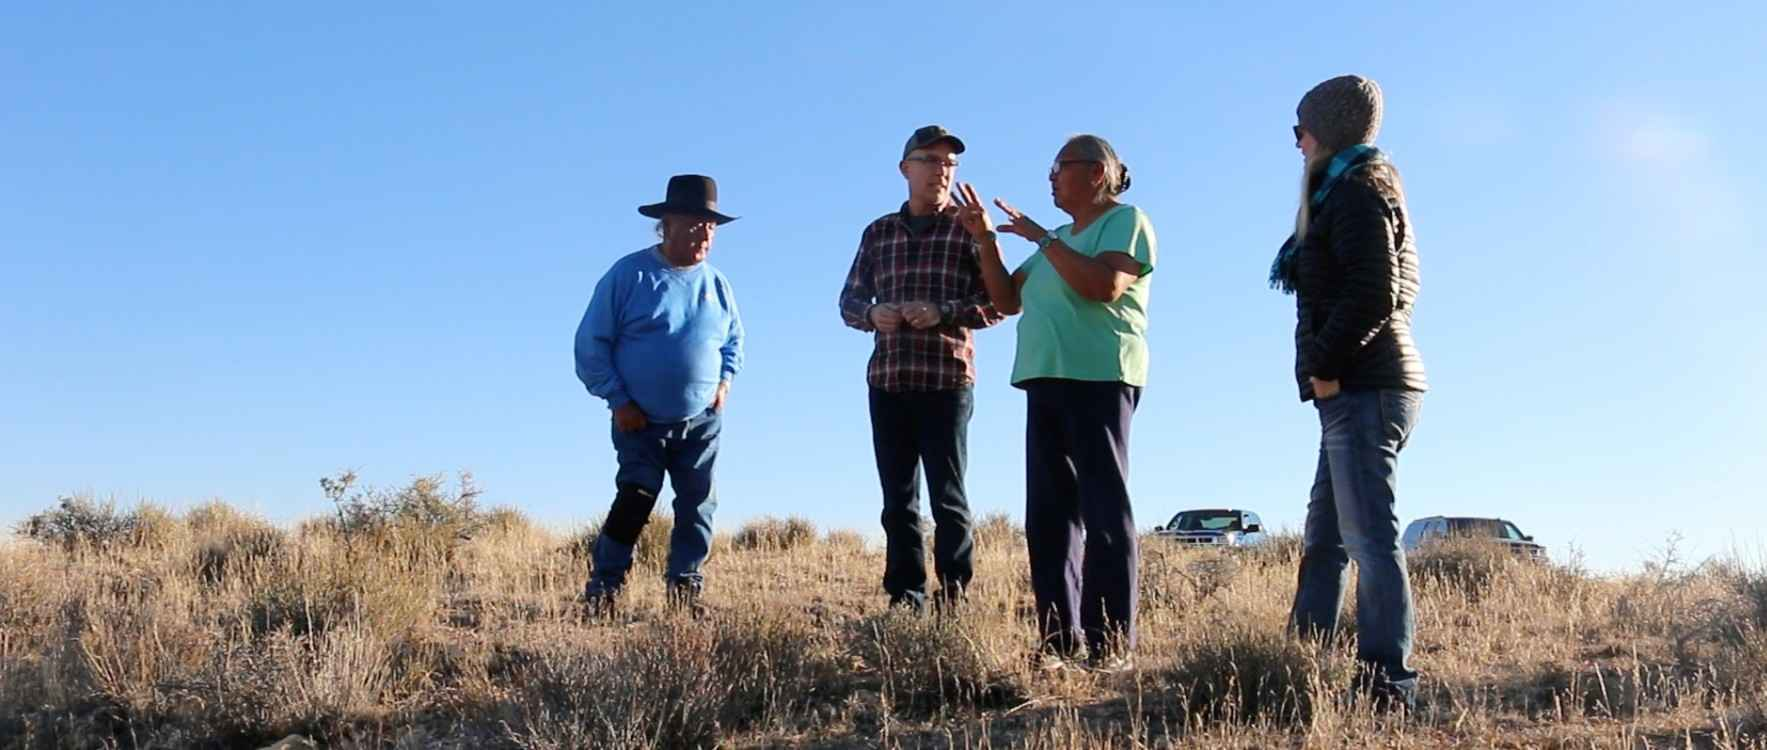 We can respond to those suffering on the margins in the Navajo Nation image